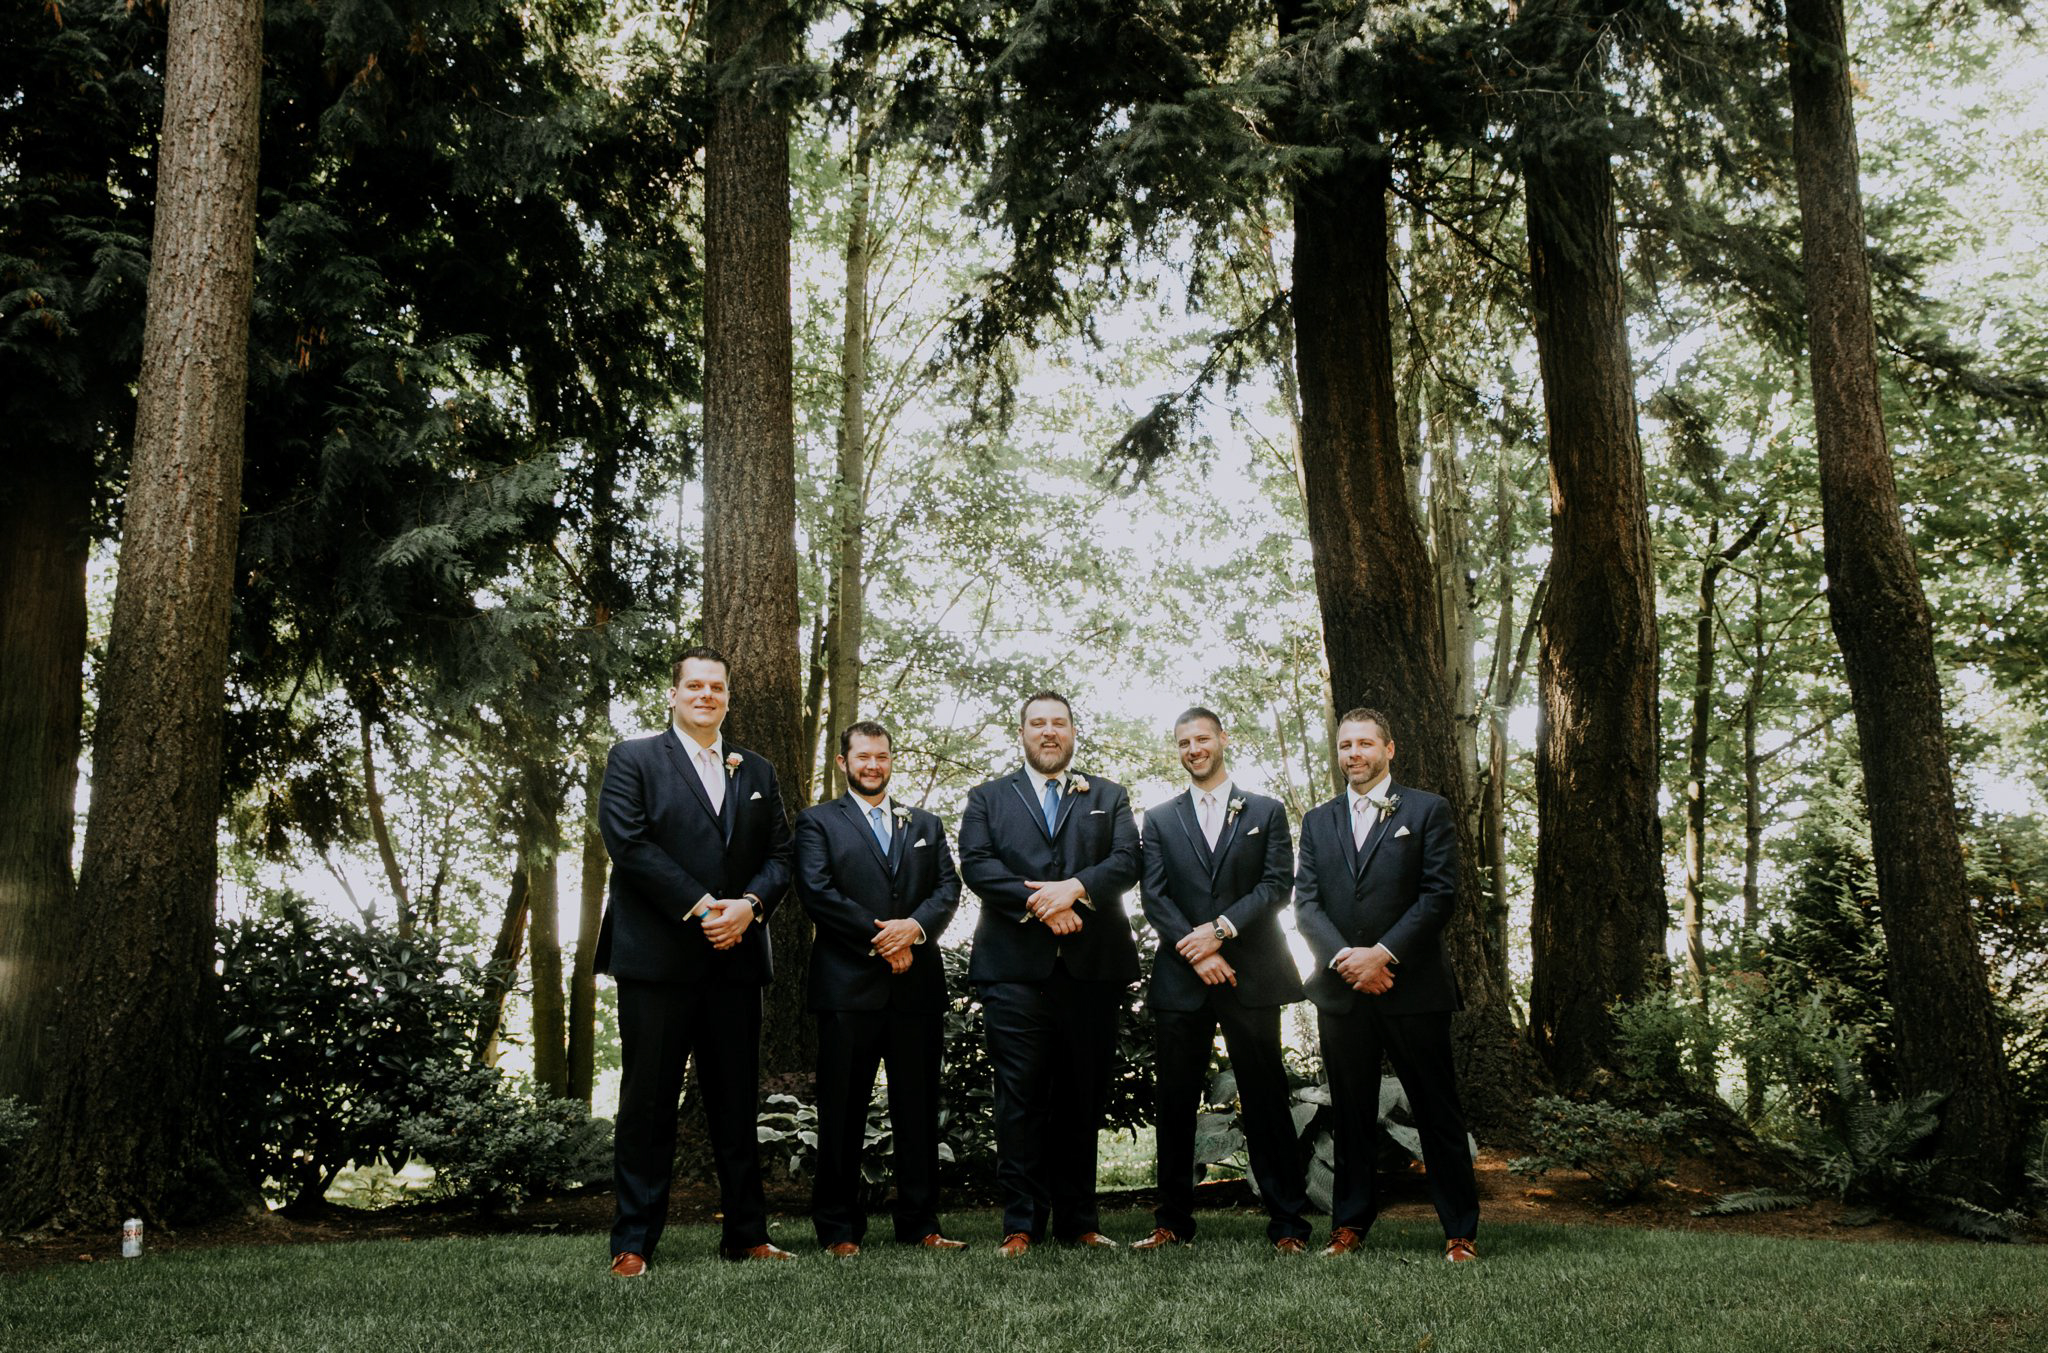 evergreen-gardens-bellingham-wedding-seattle-photographer-caitlyn-nikula-3.jpg